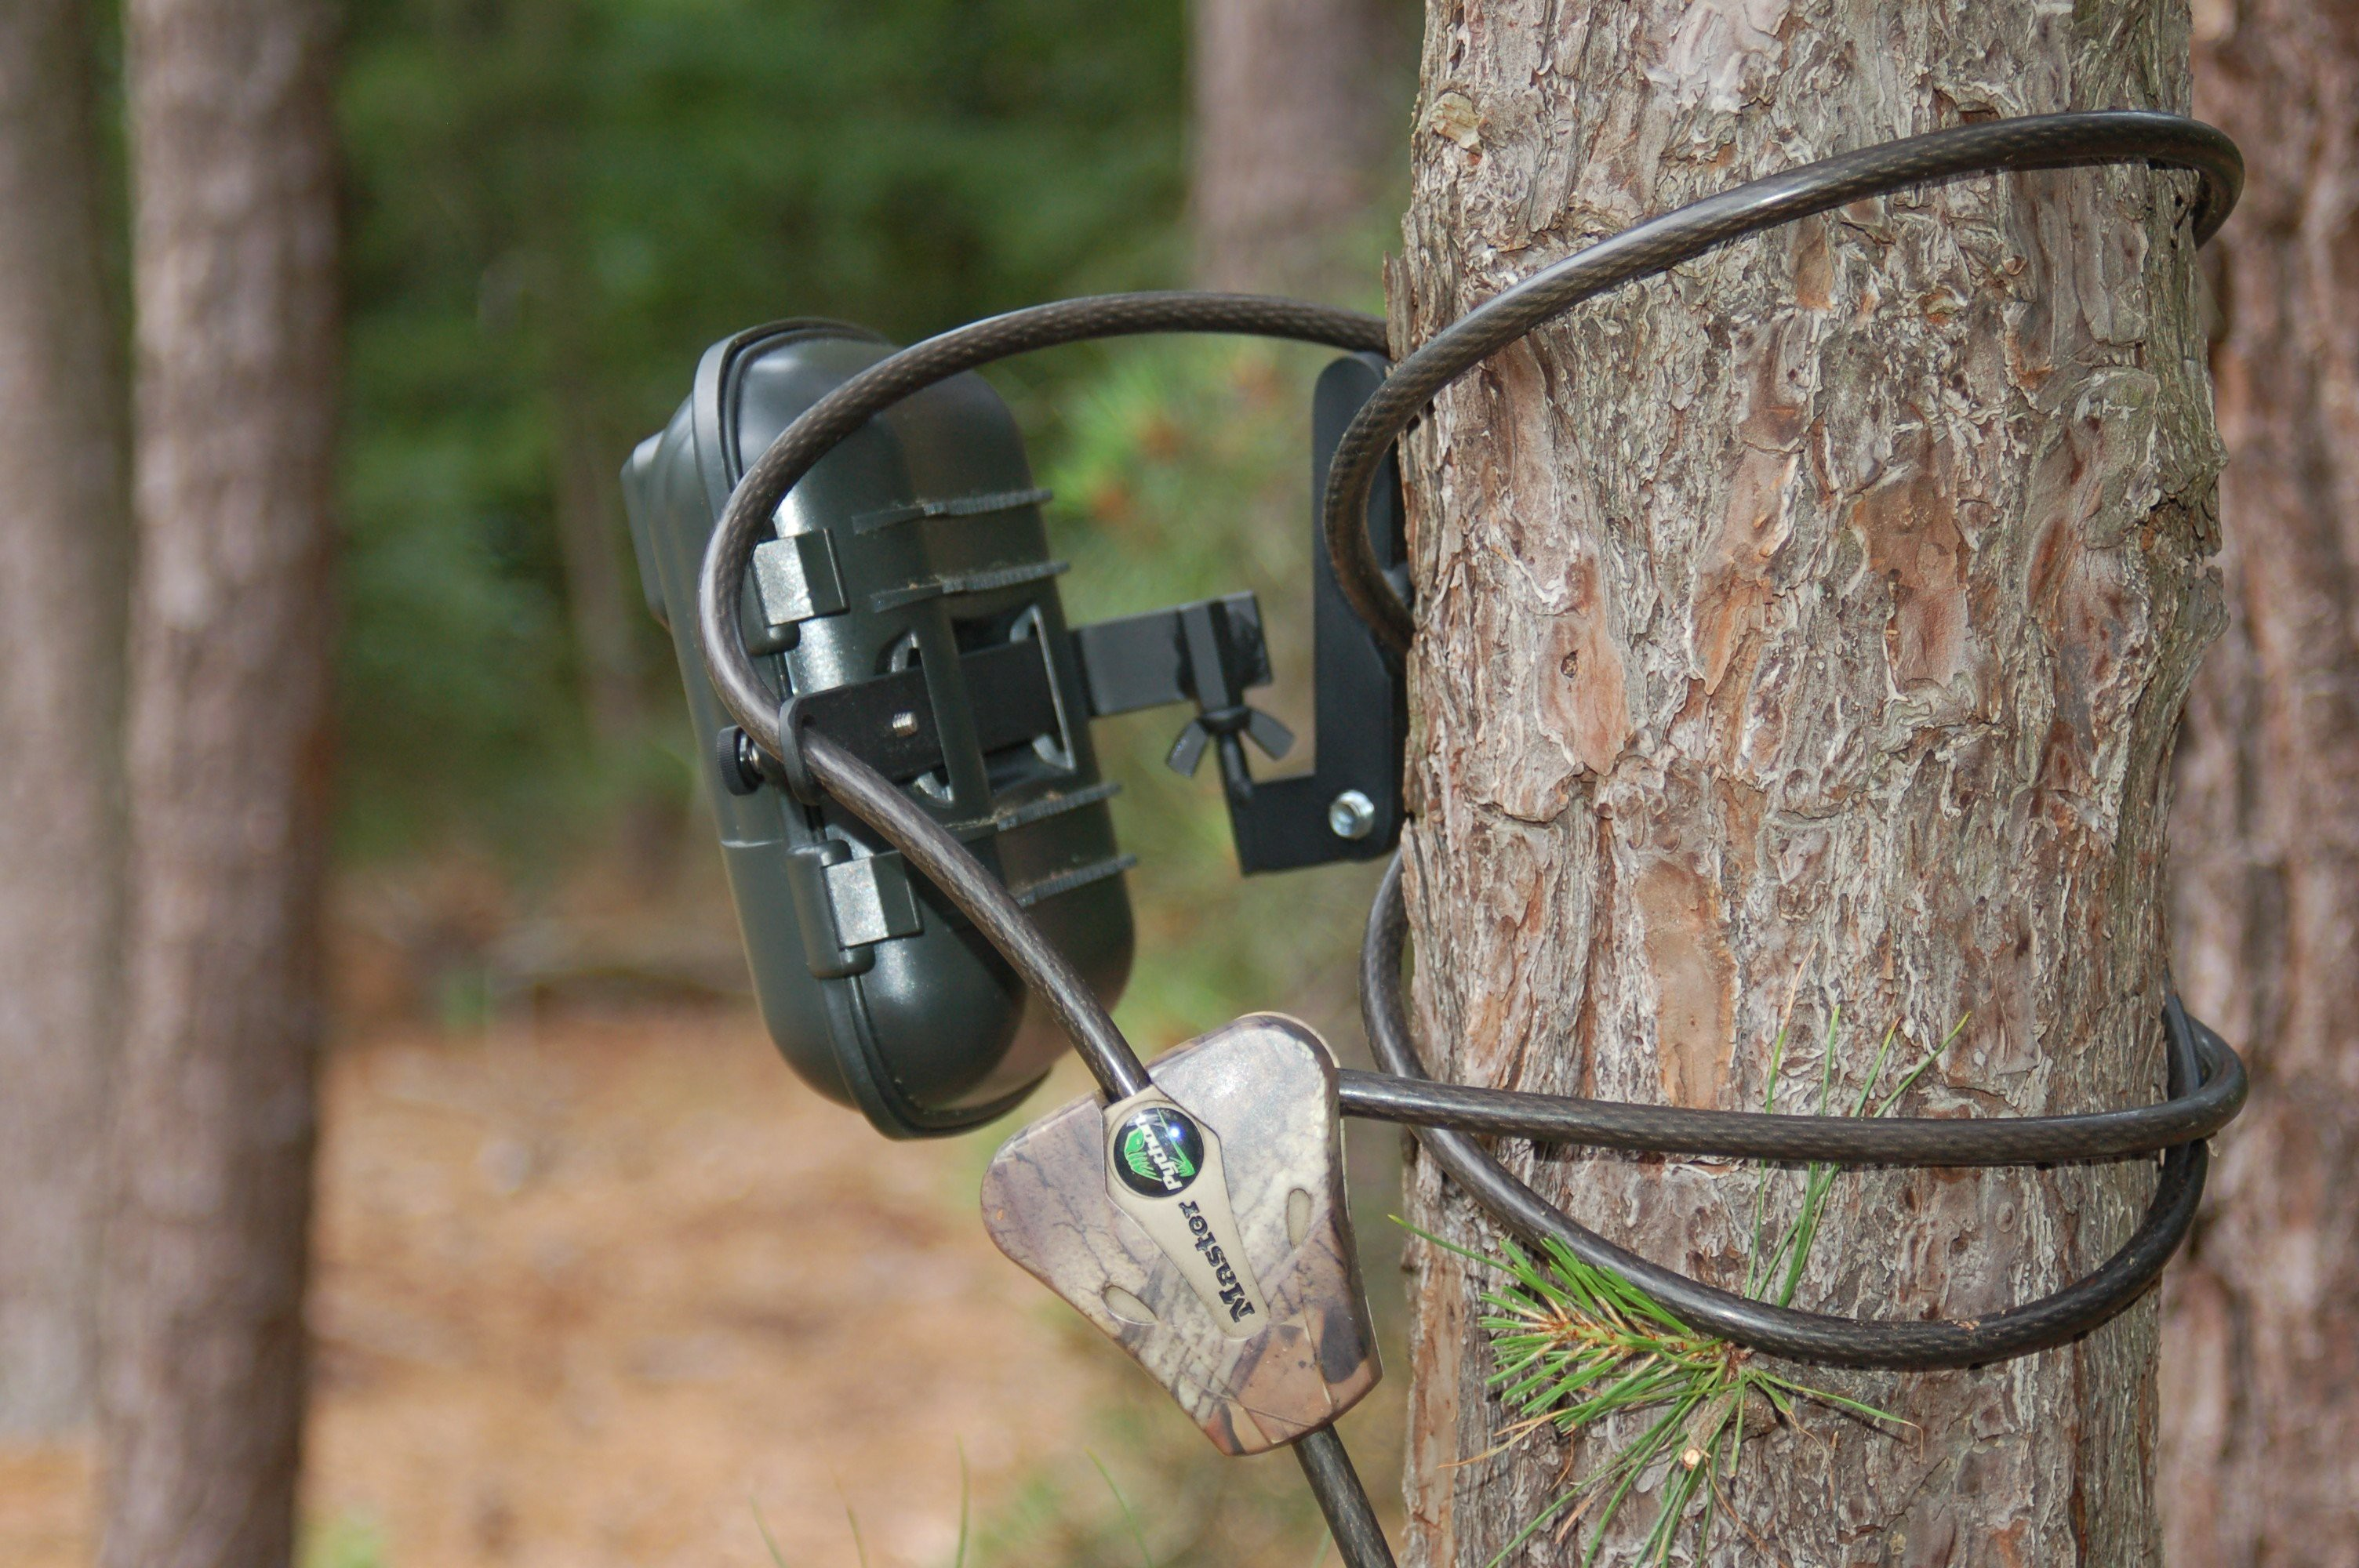 trail cameras secure